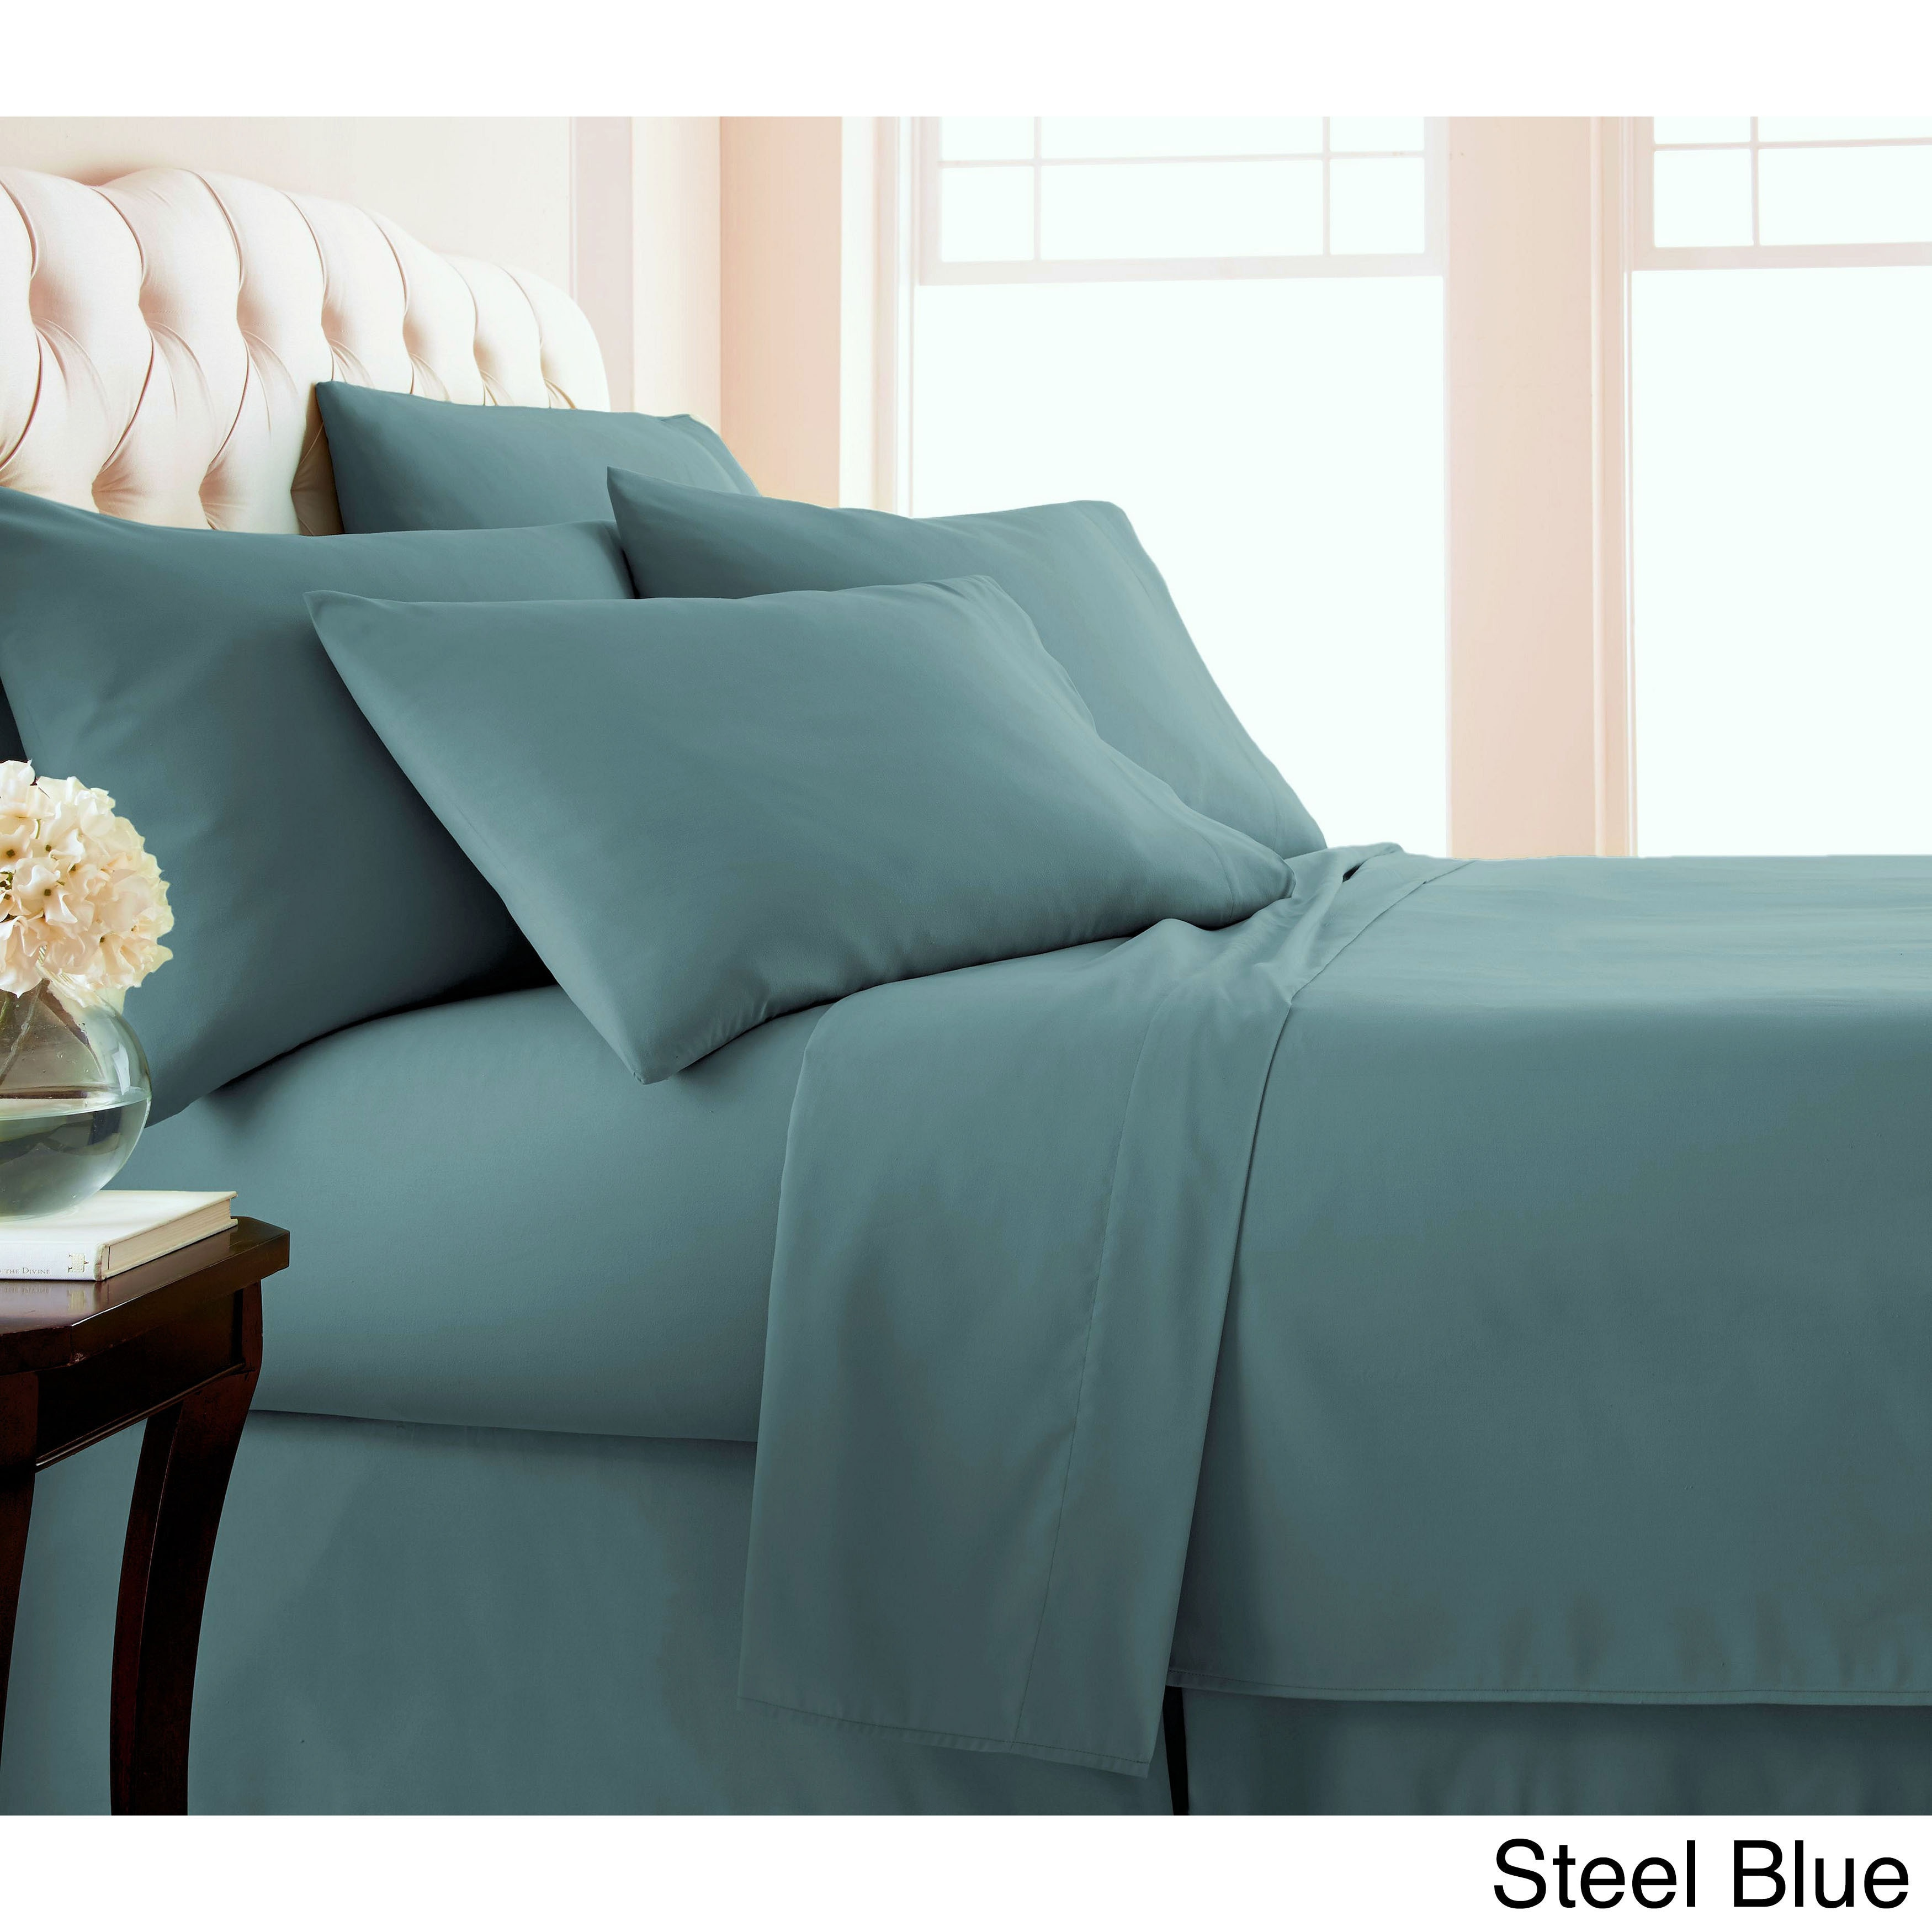 Comfortable 6piece 21inch Extra Deep Pocket Bed Sheet Set by